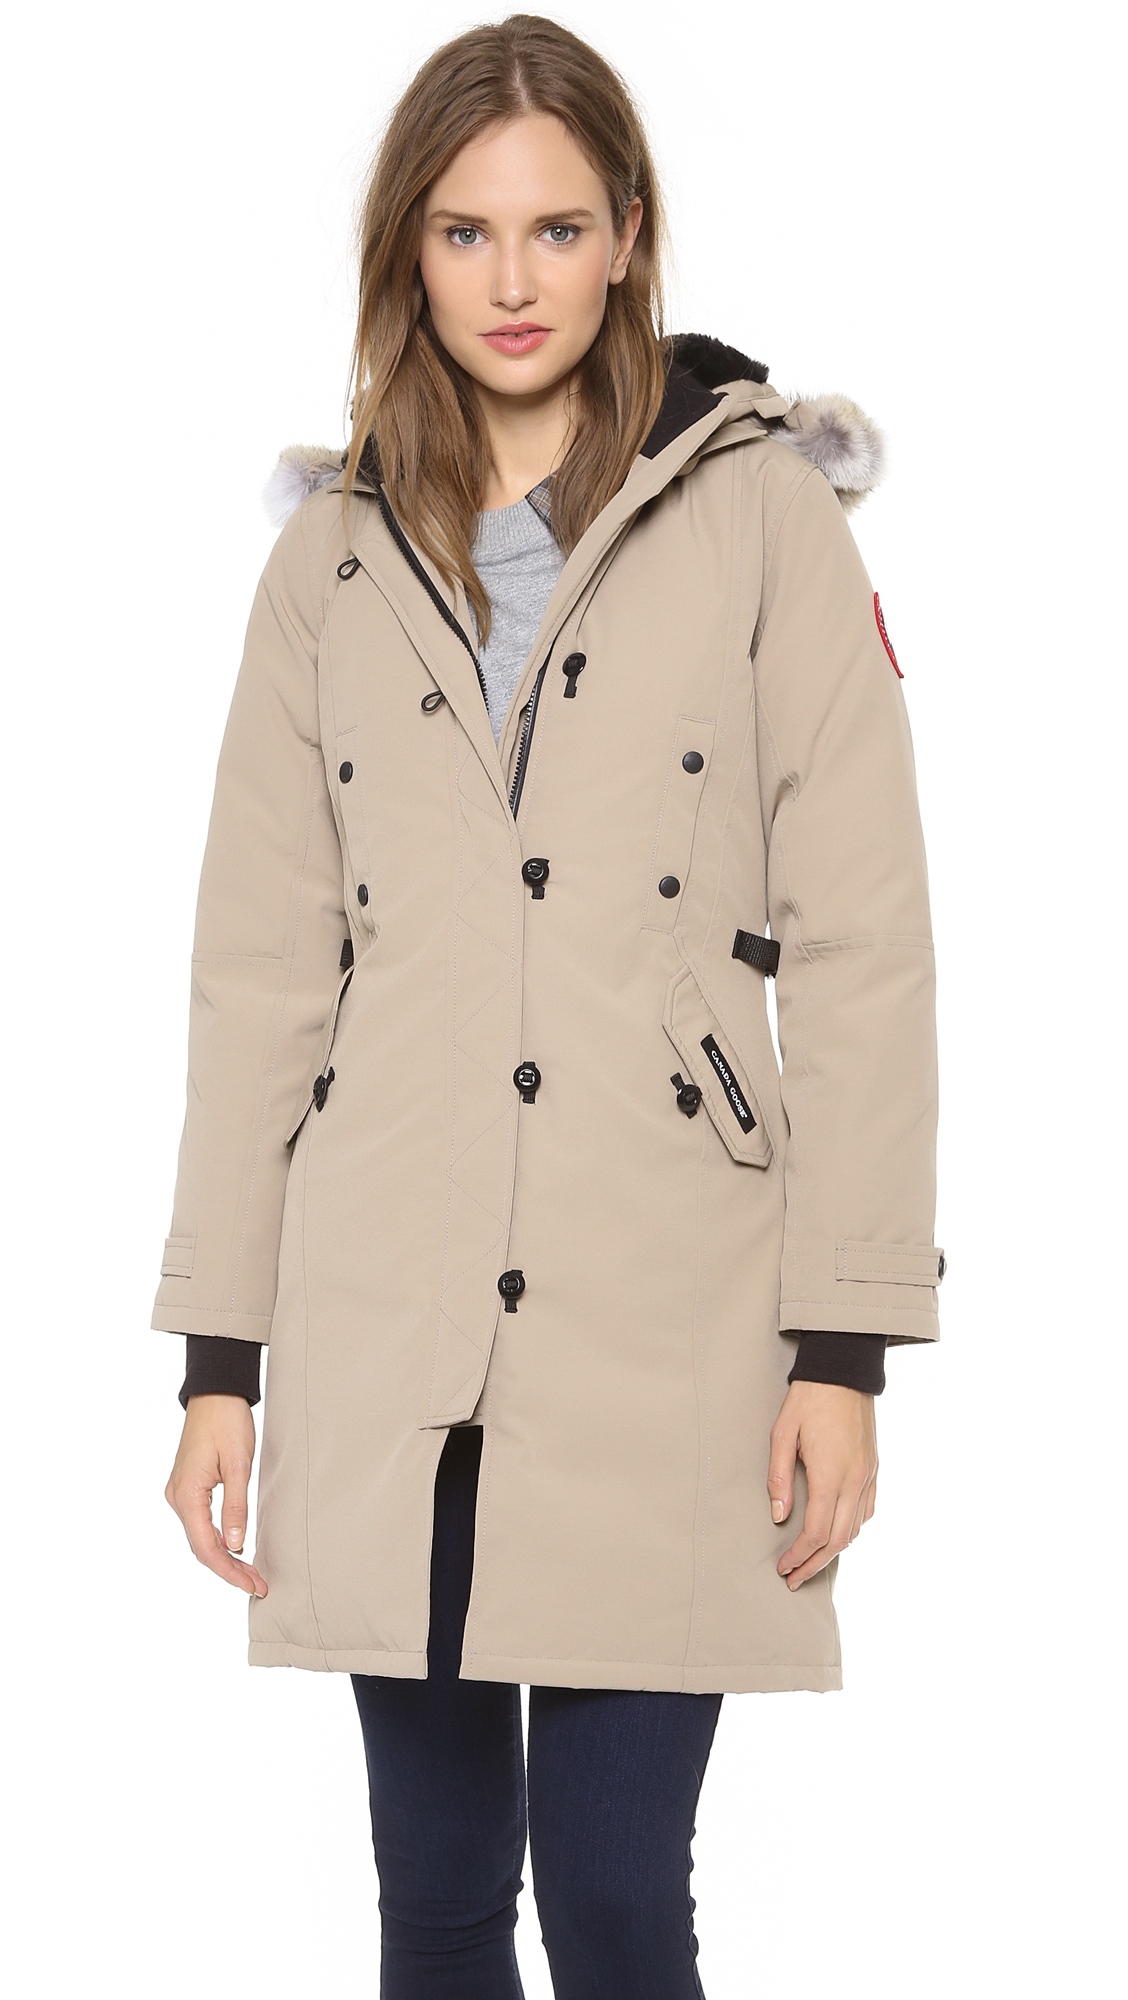 Celebrity Jr. Women Puffer Jacket Trench Coat Winter Parka ...